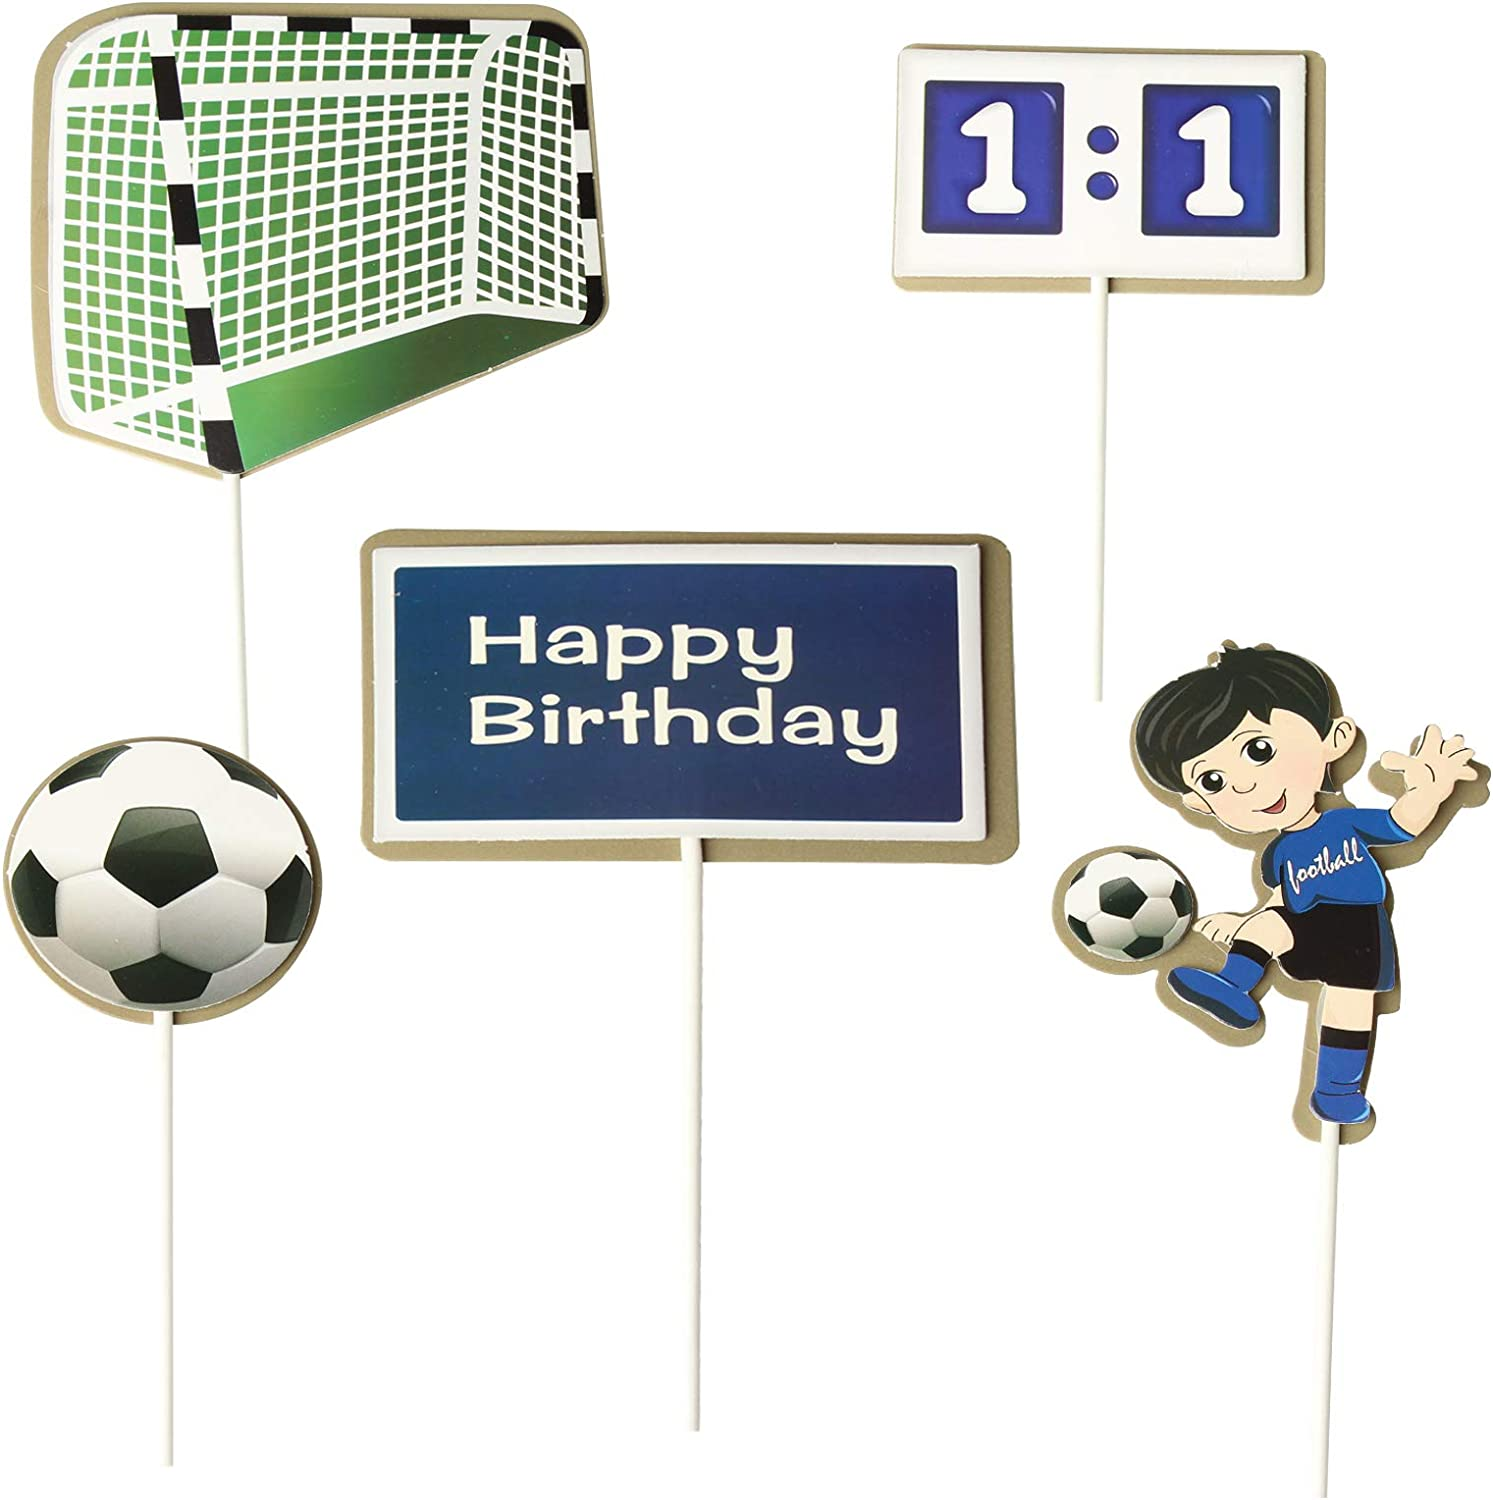 Birthday Cake Topper Decoration Creative Football Lovers Cake Supplies Happy Birthday Boy Party Decoration